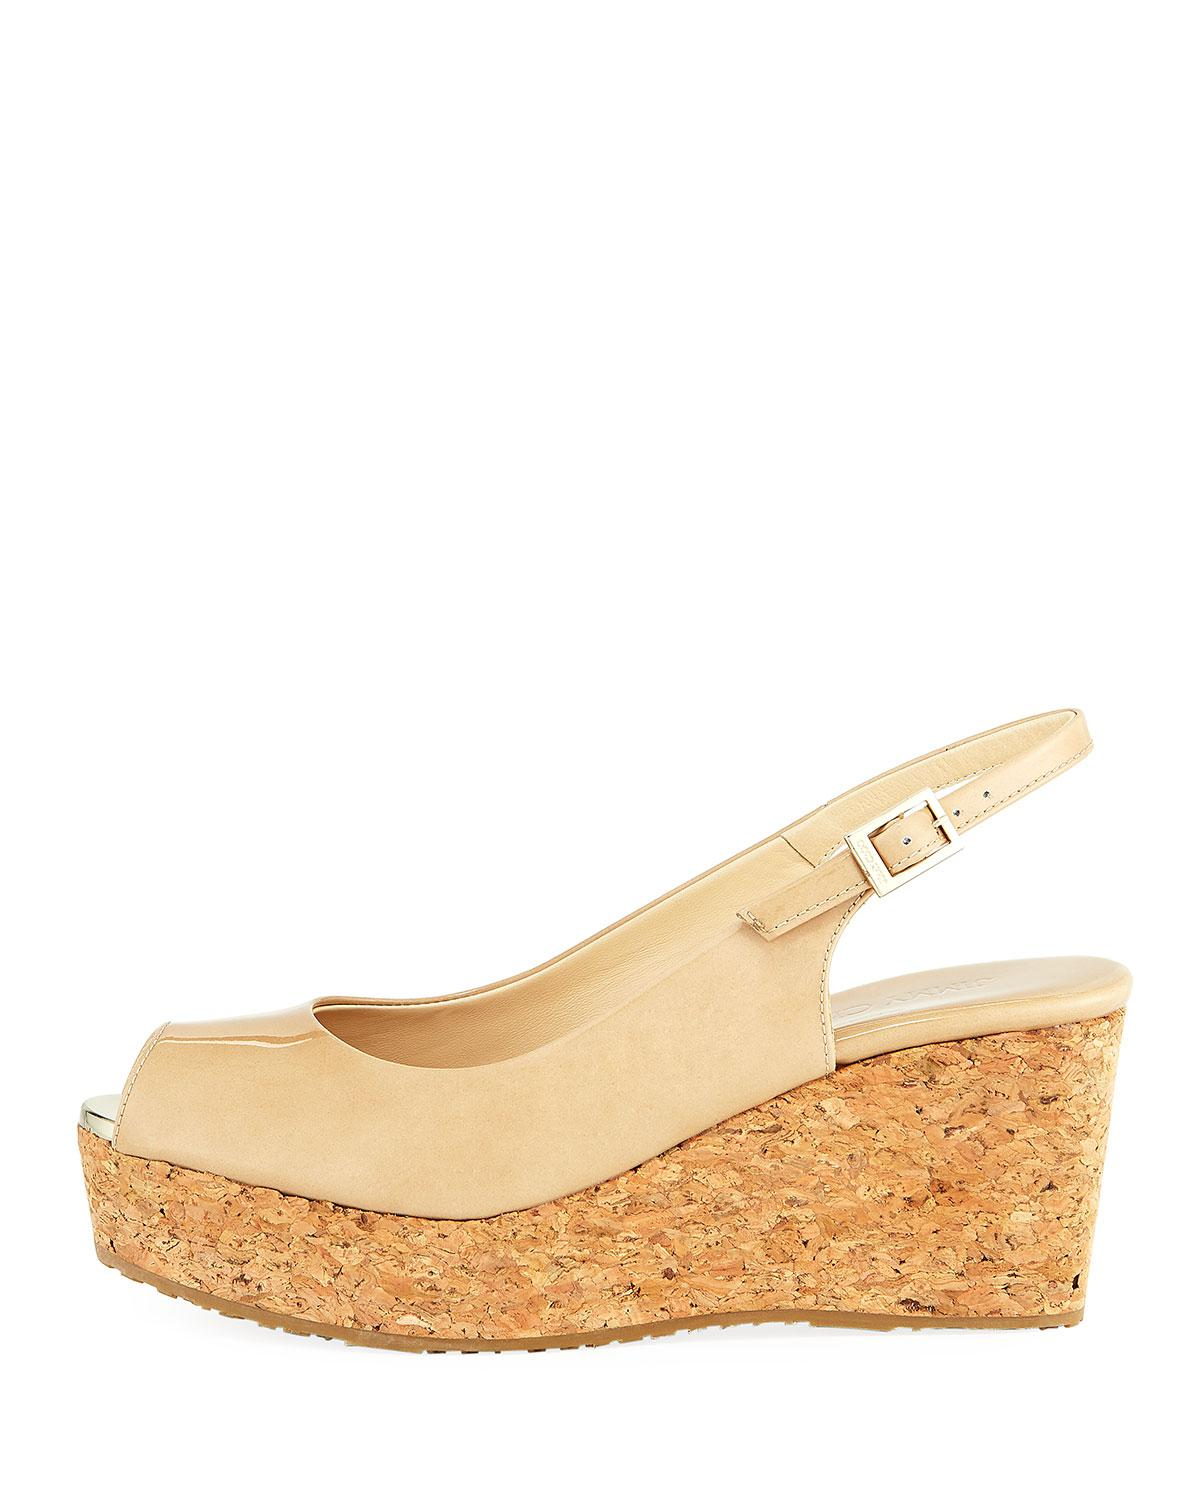 5f388020be48 Lyst - Jimmy Choo Praise Patent Slingback Wedge Sandal in Natural